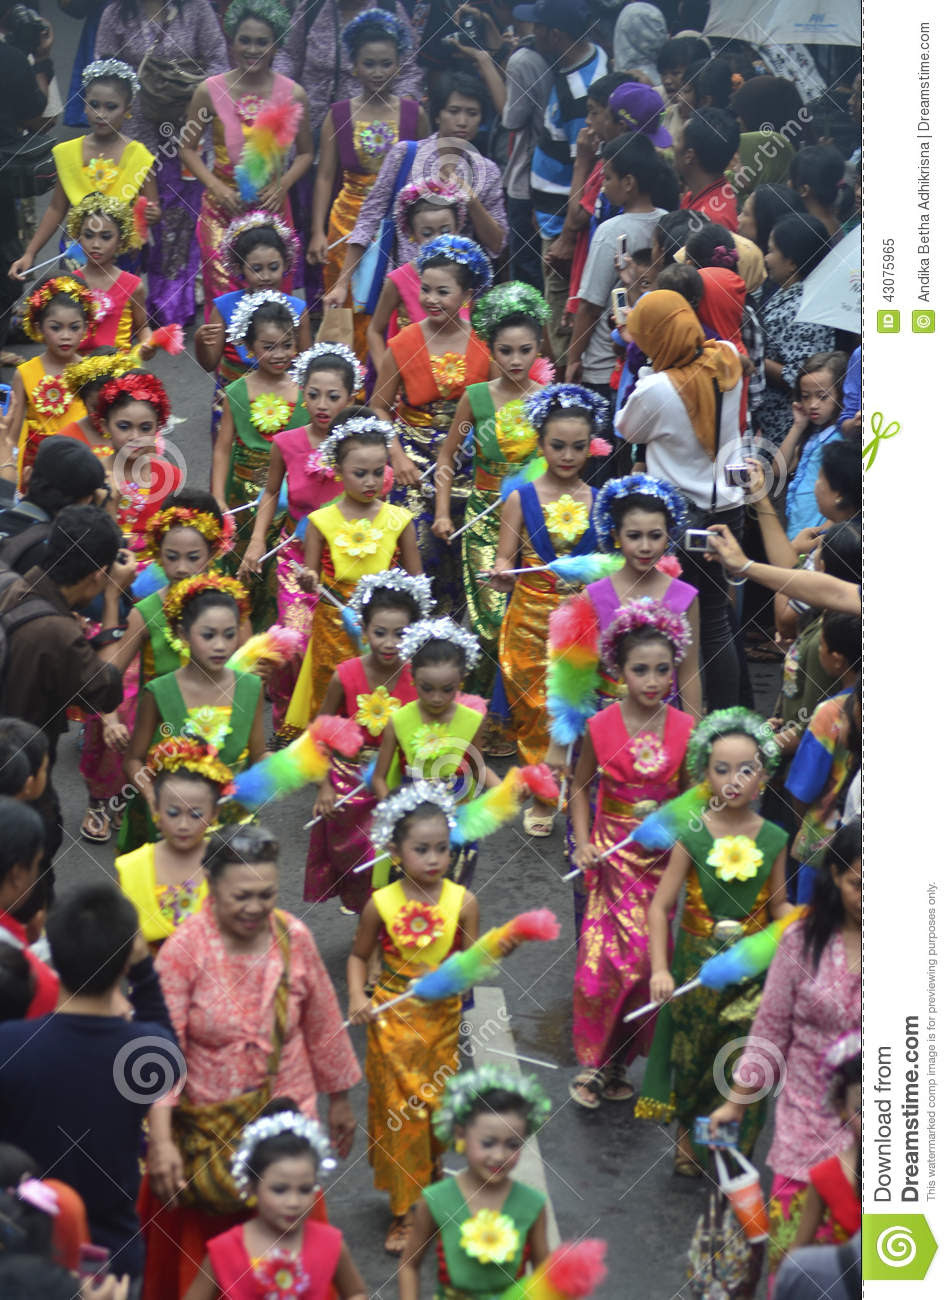 FOREIGN INFLUENCE IN INDONESIAN CULTURE Editorial Image  Image: 43075965